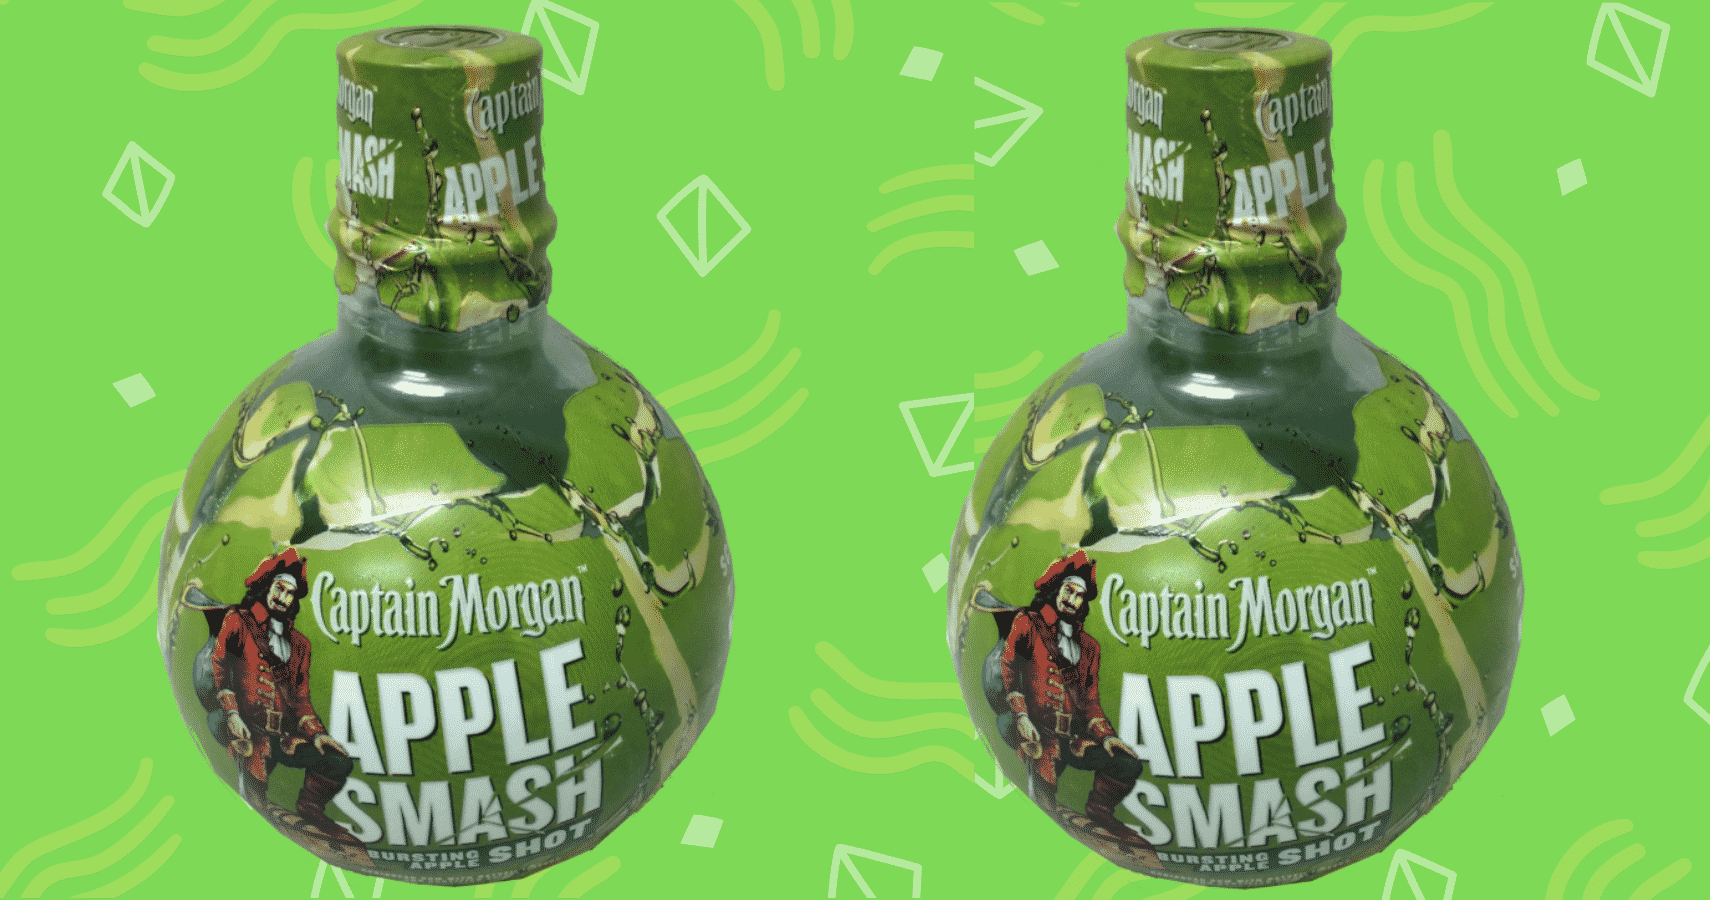 Captain Morgan's Apple Smash